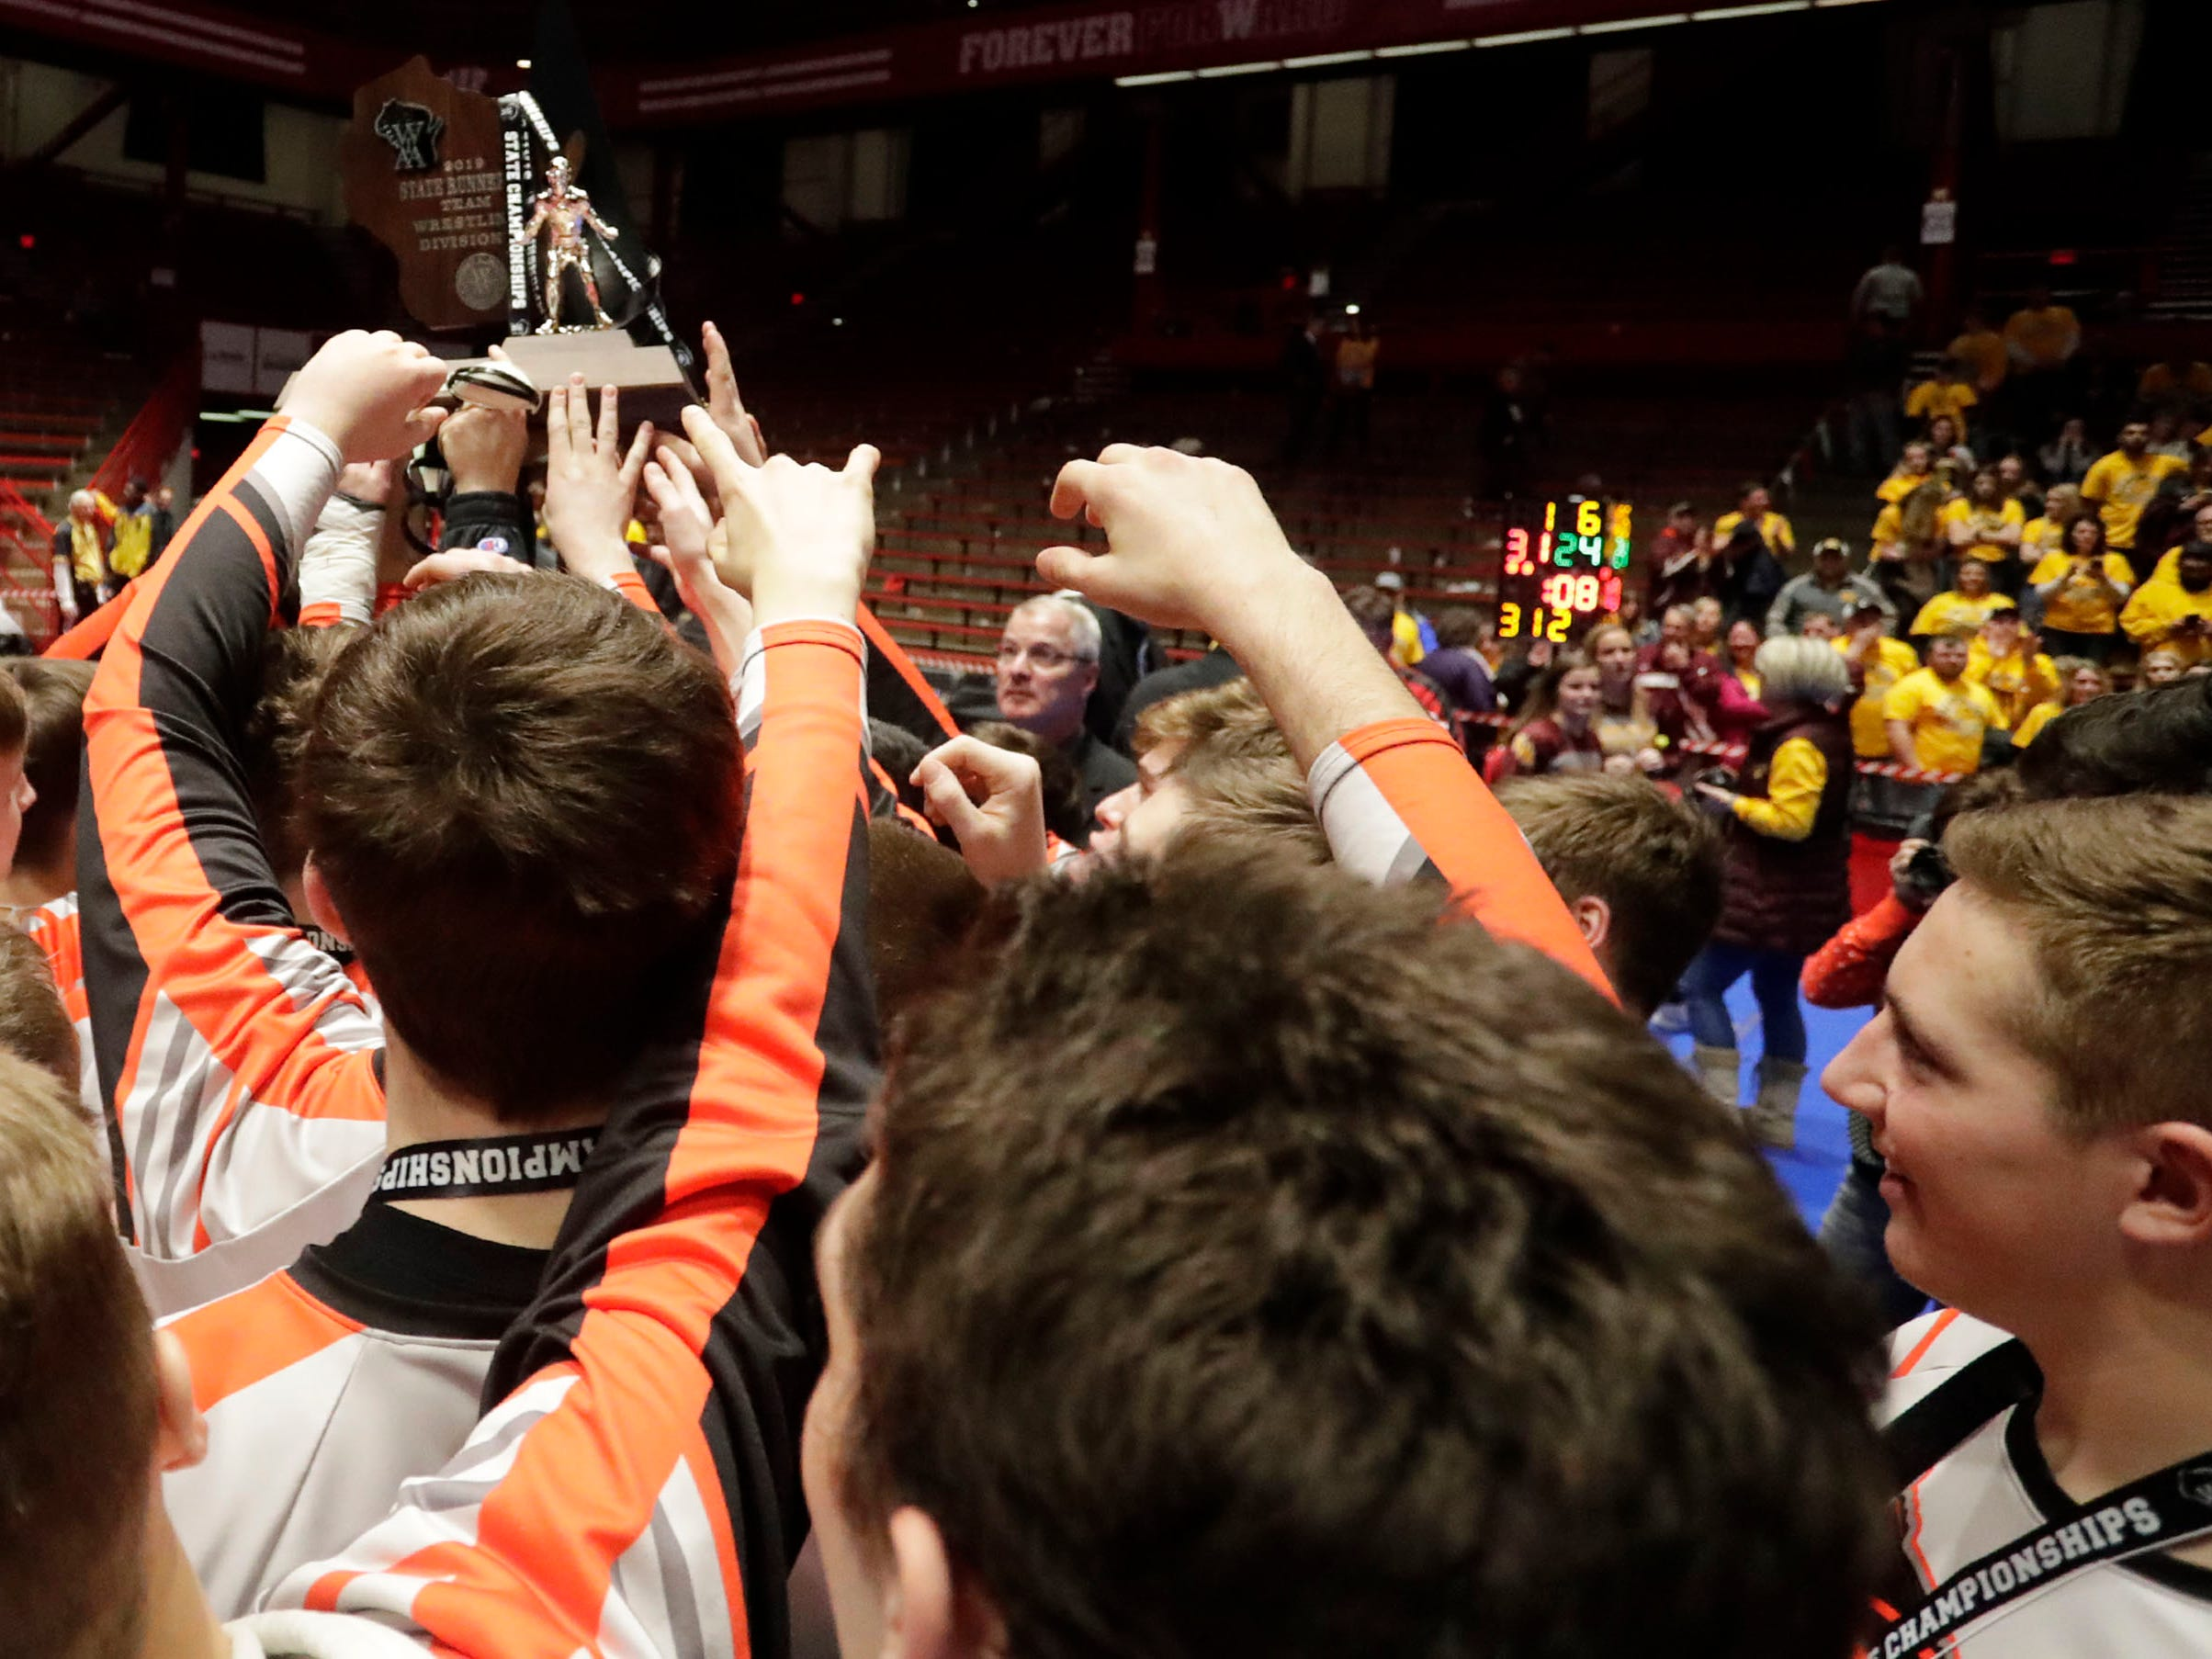 Stratford players grasp for the second place trophy after losing to Fennimore in the WIAA State team wrestling final, Saturday, March 2, 2019, in Madison, Wis.